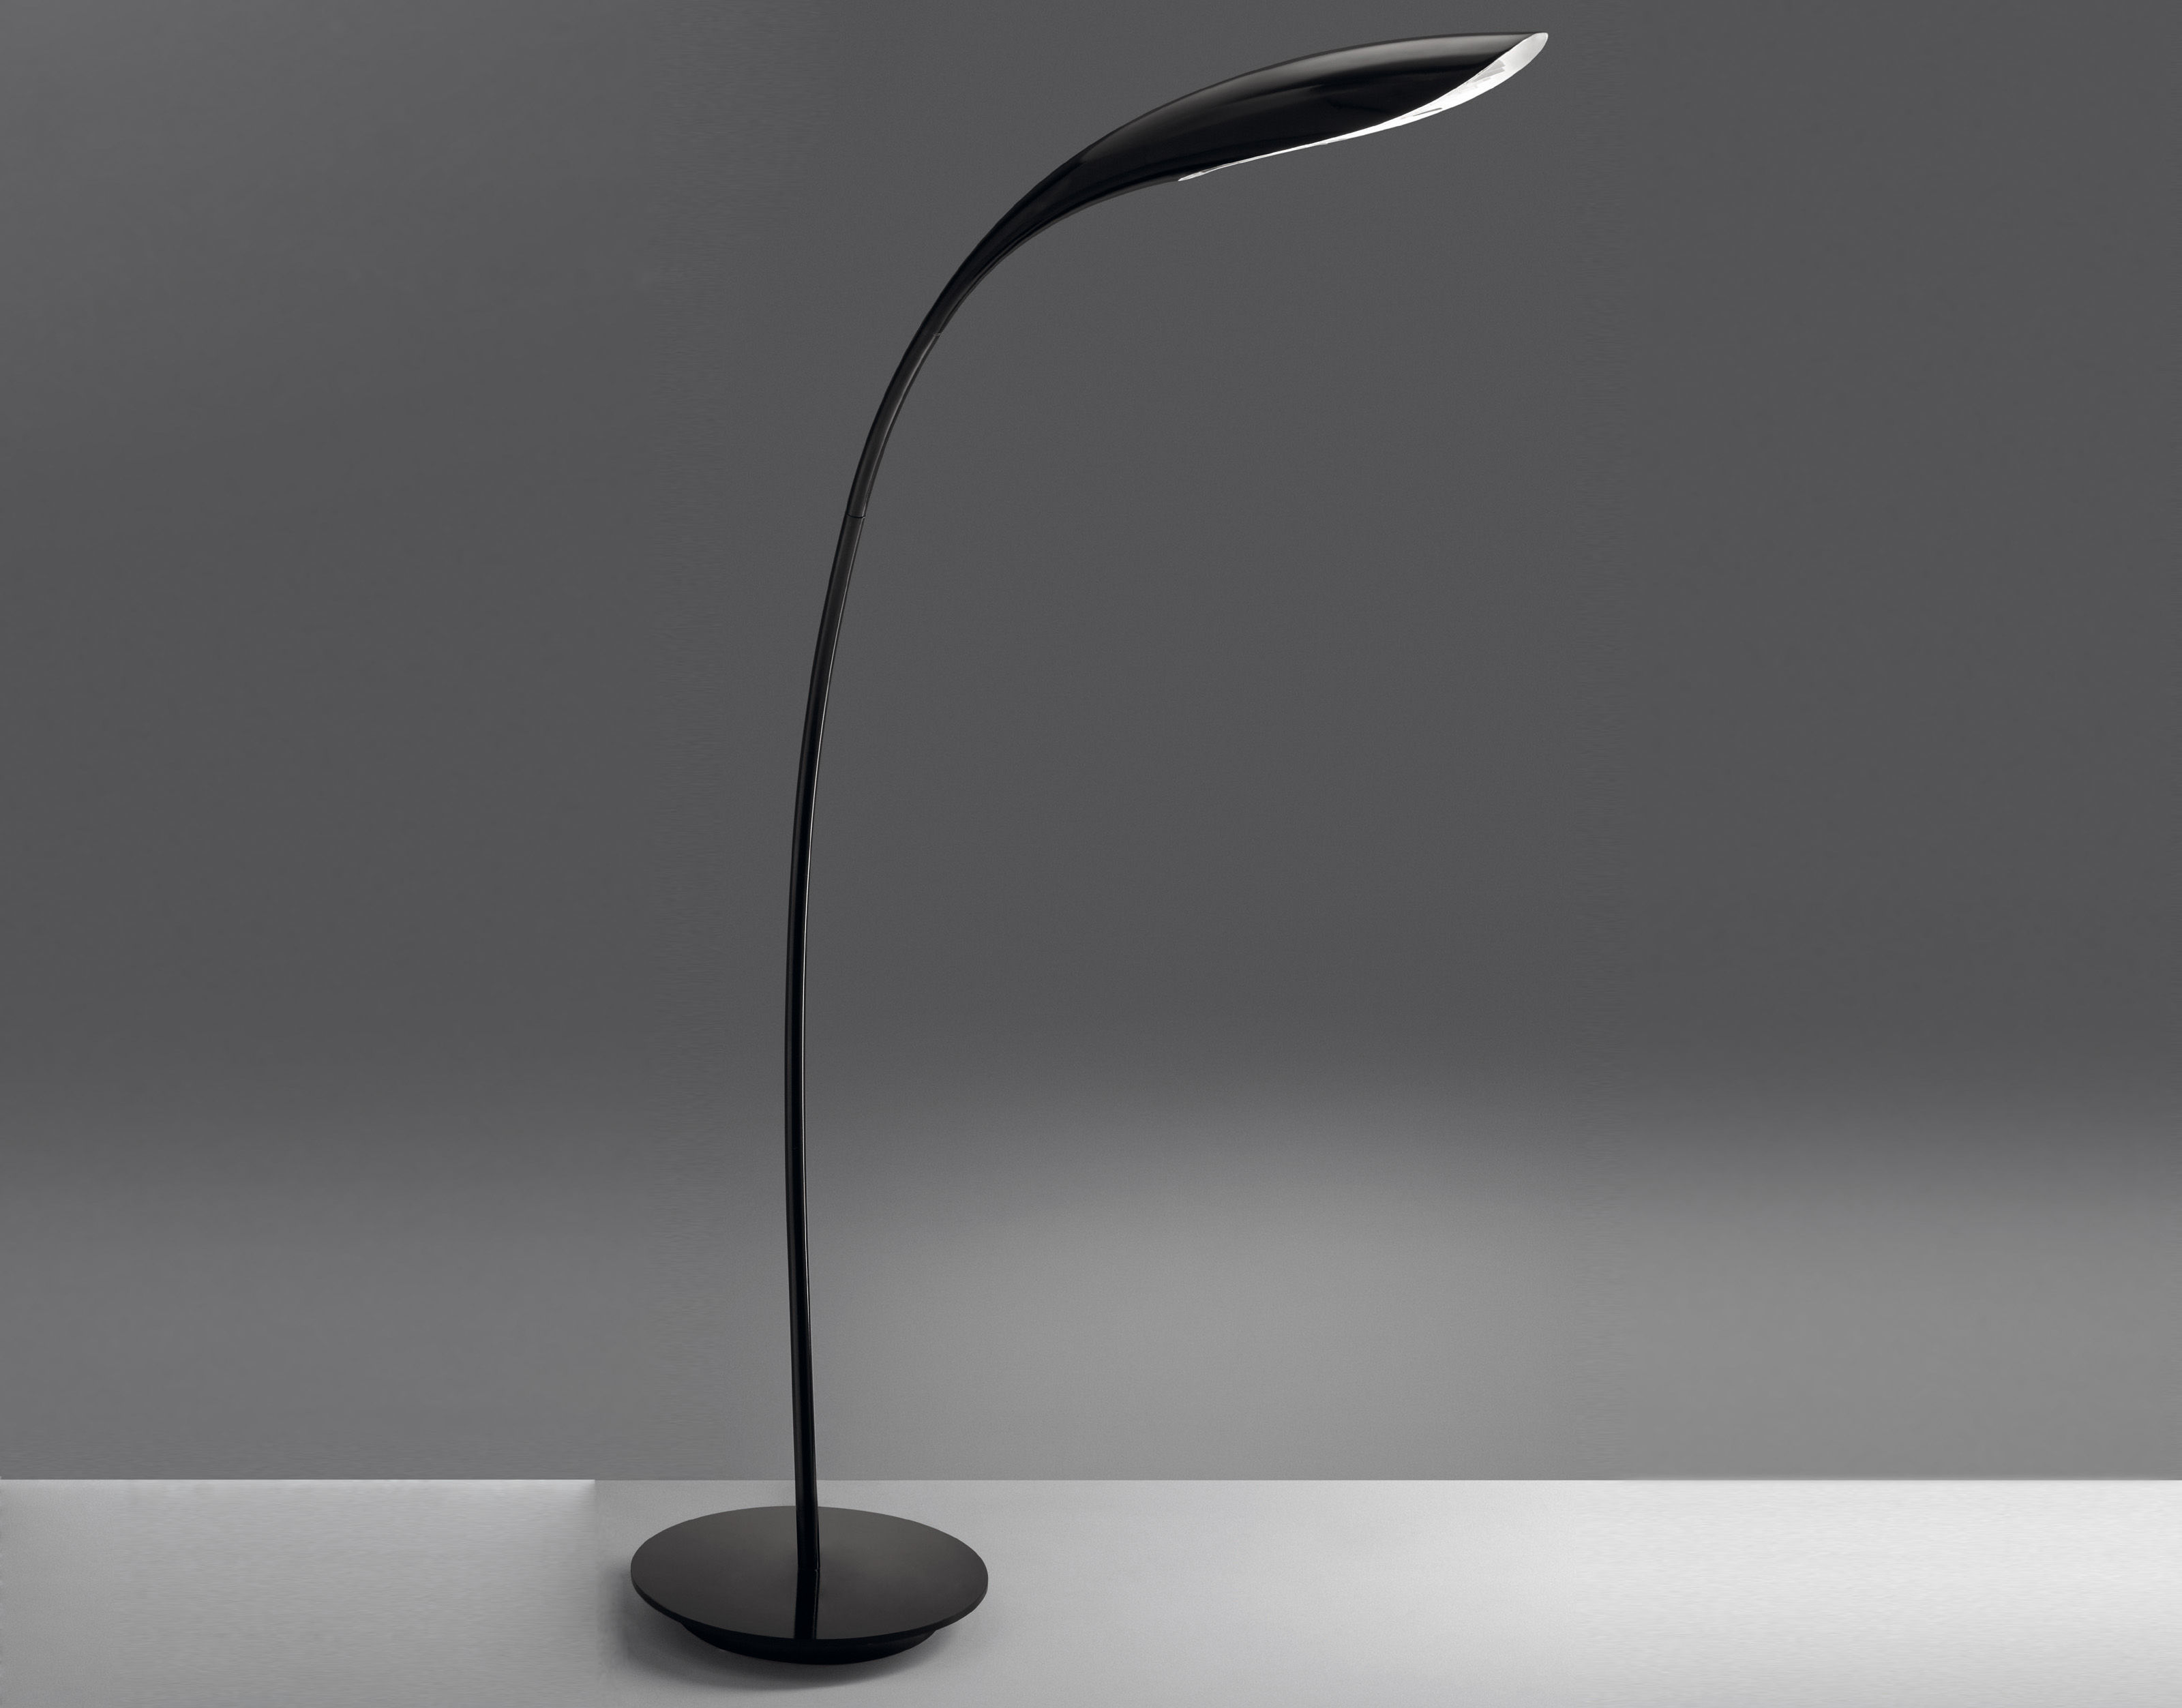 Doride lampada a stelo nero lucido by artemide made in design